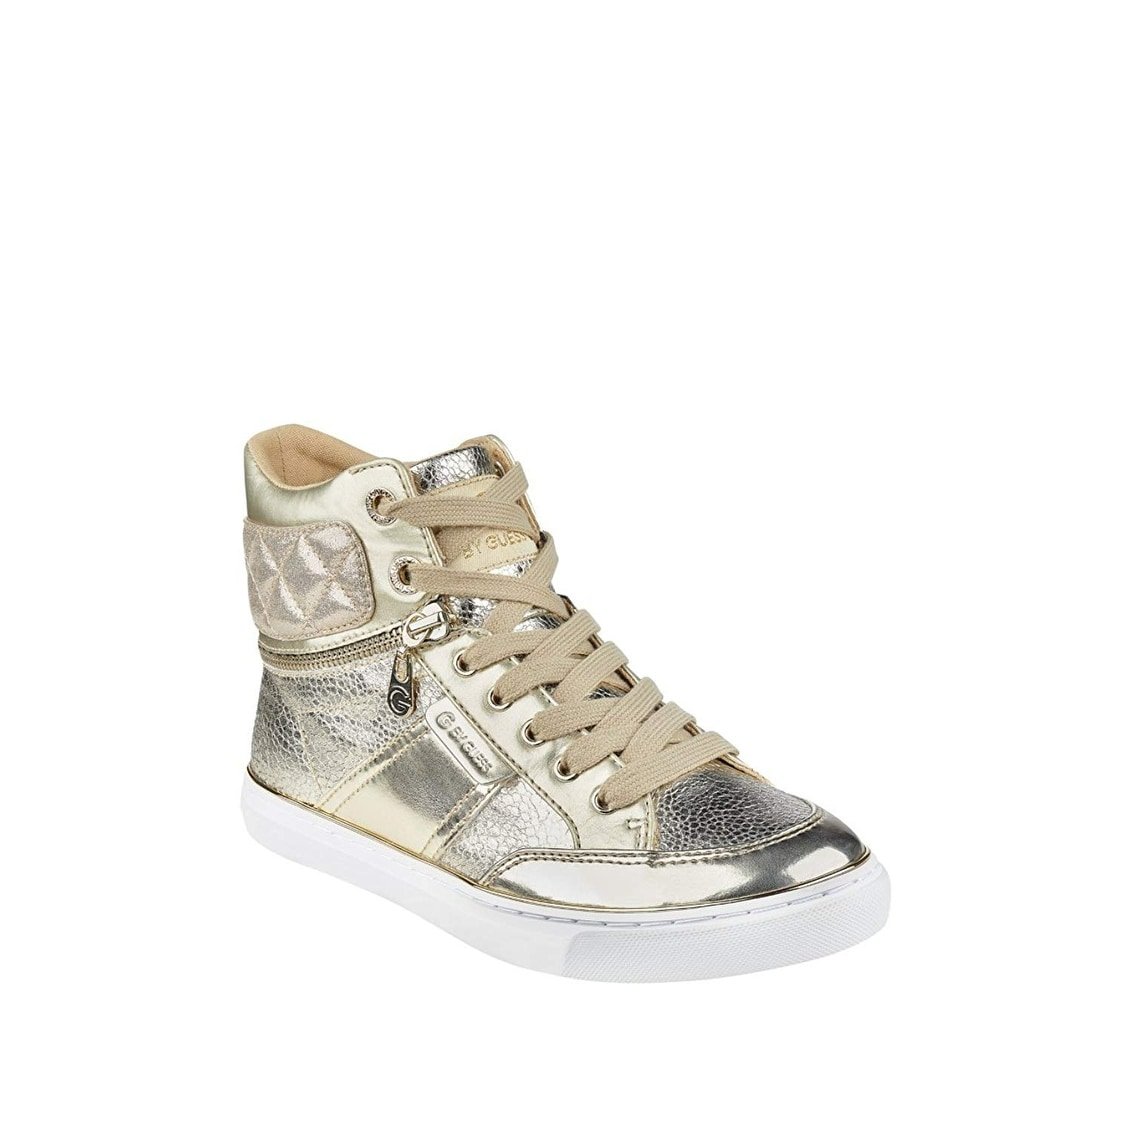 G by GUESS Womens Ombae Quilted Leather Fashion Sneakers